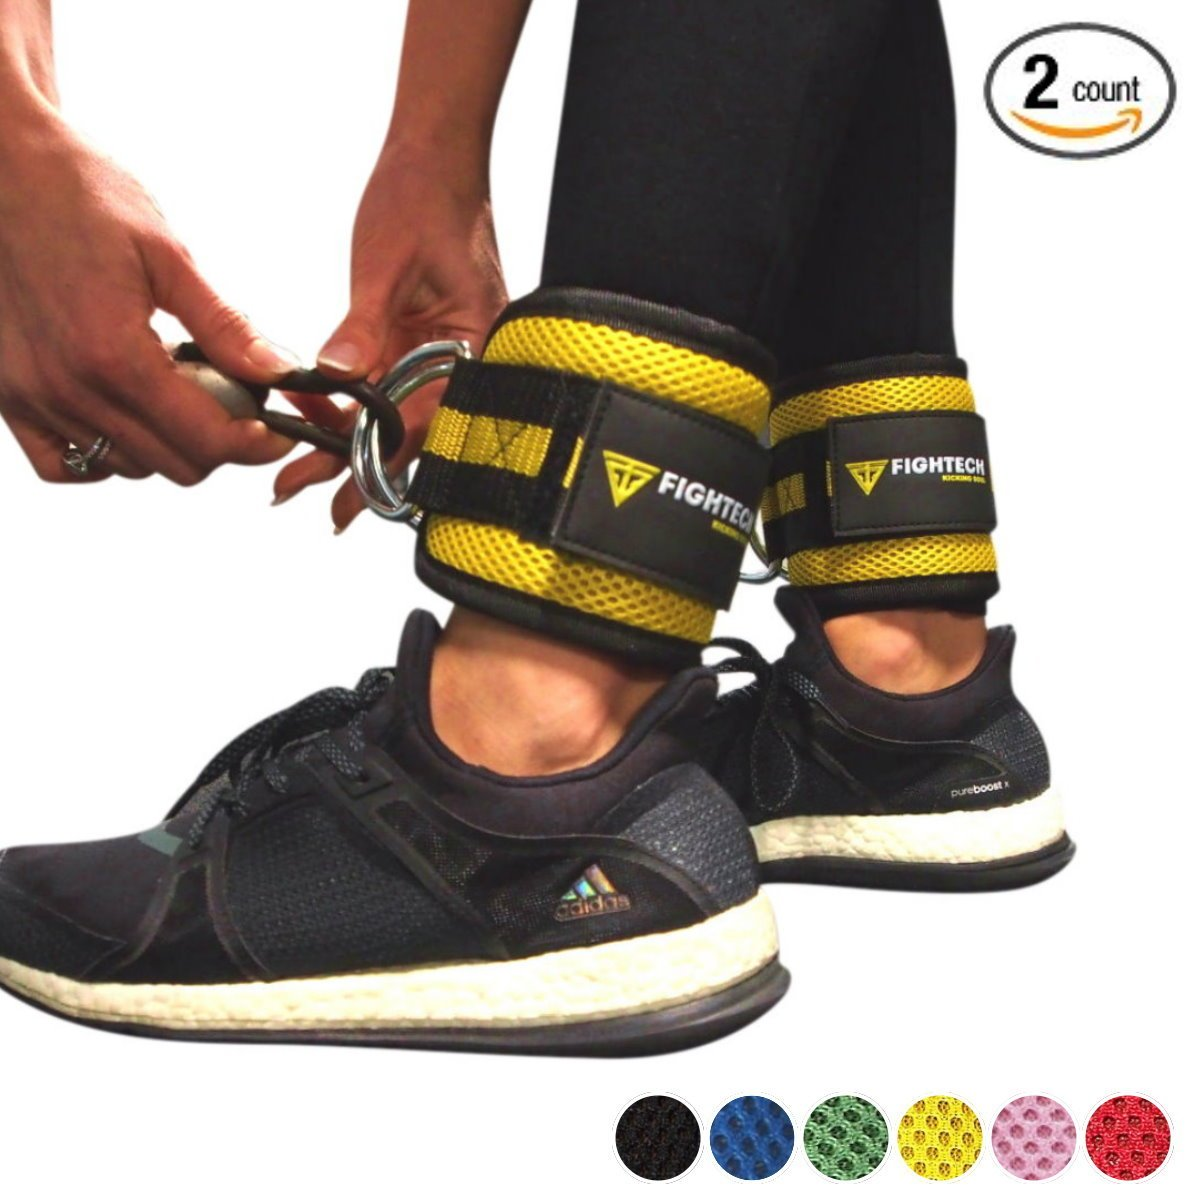 FIGHTECH Ankle Cuffs for Cable Machines. Glute & Leg Workouts for Men and Women. Stainless Steel Double D-Ring, Adjustable Comfort fit Neoprene (YEL)